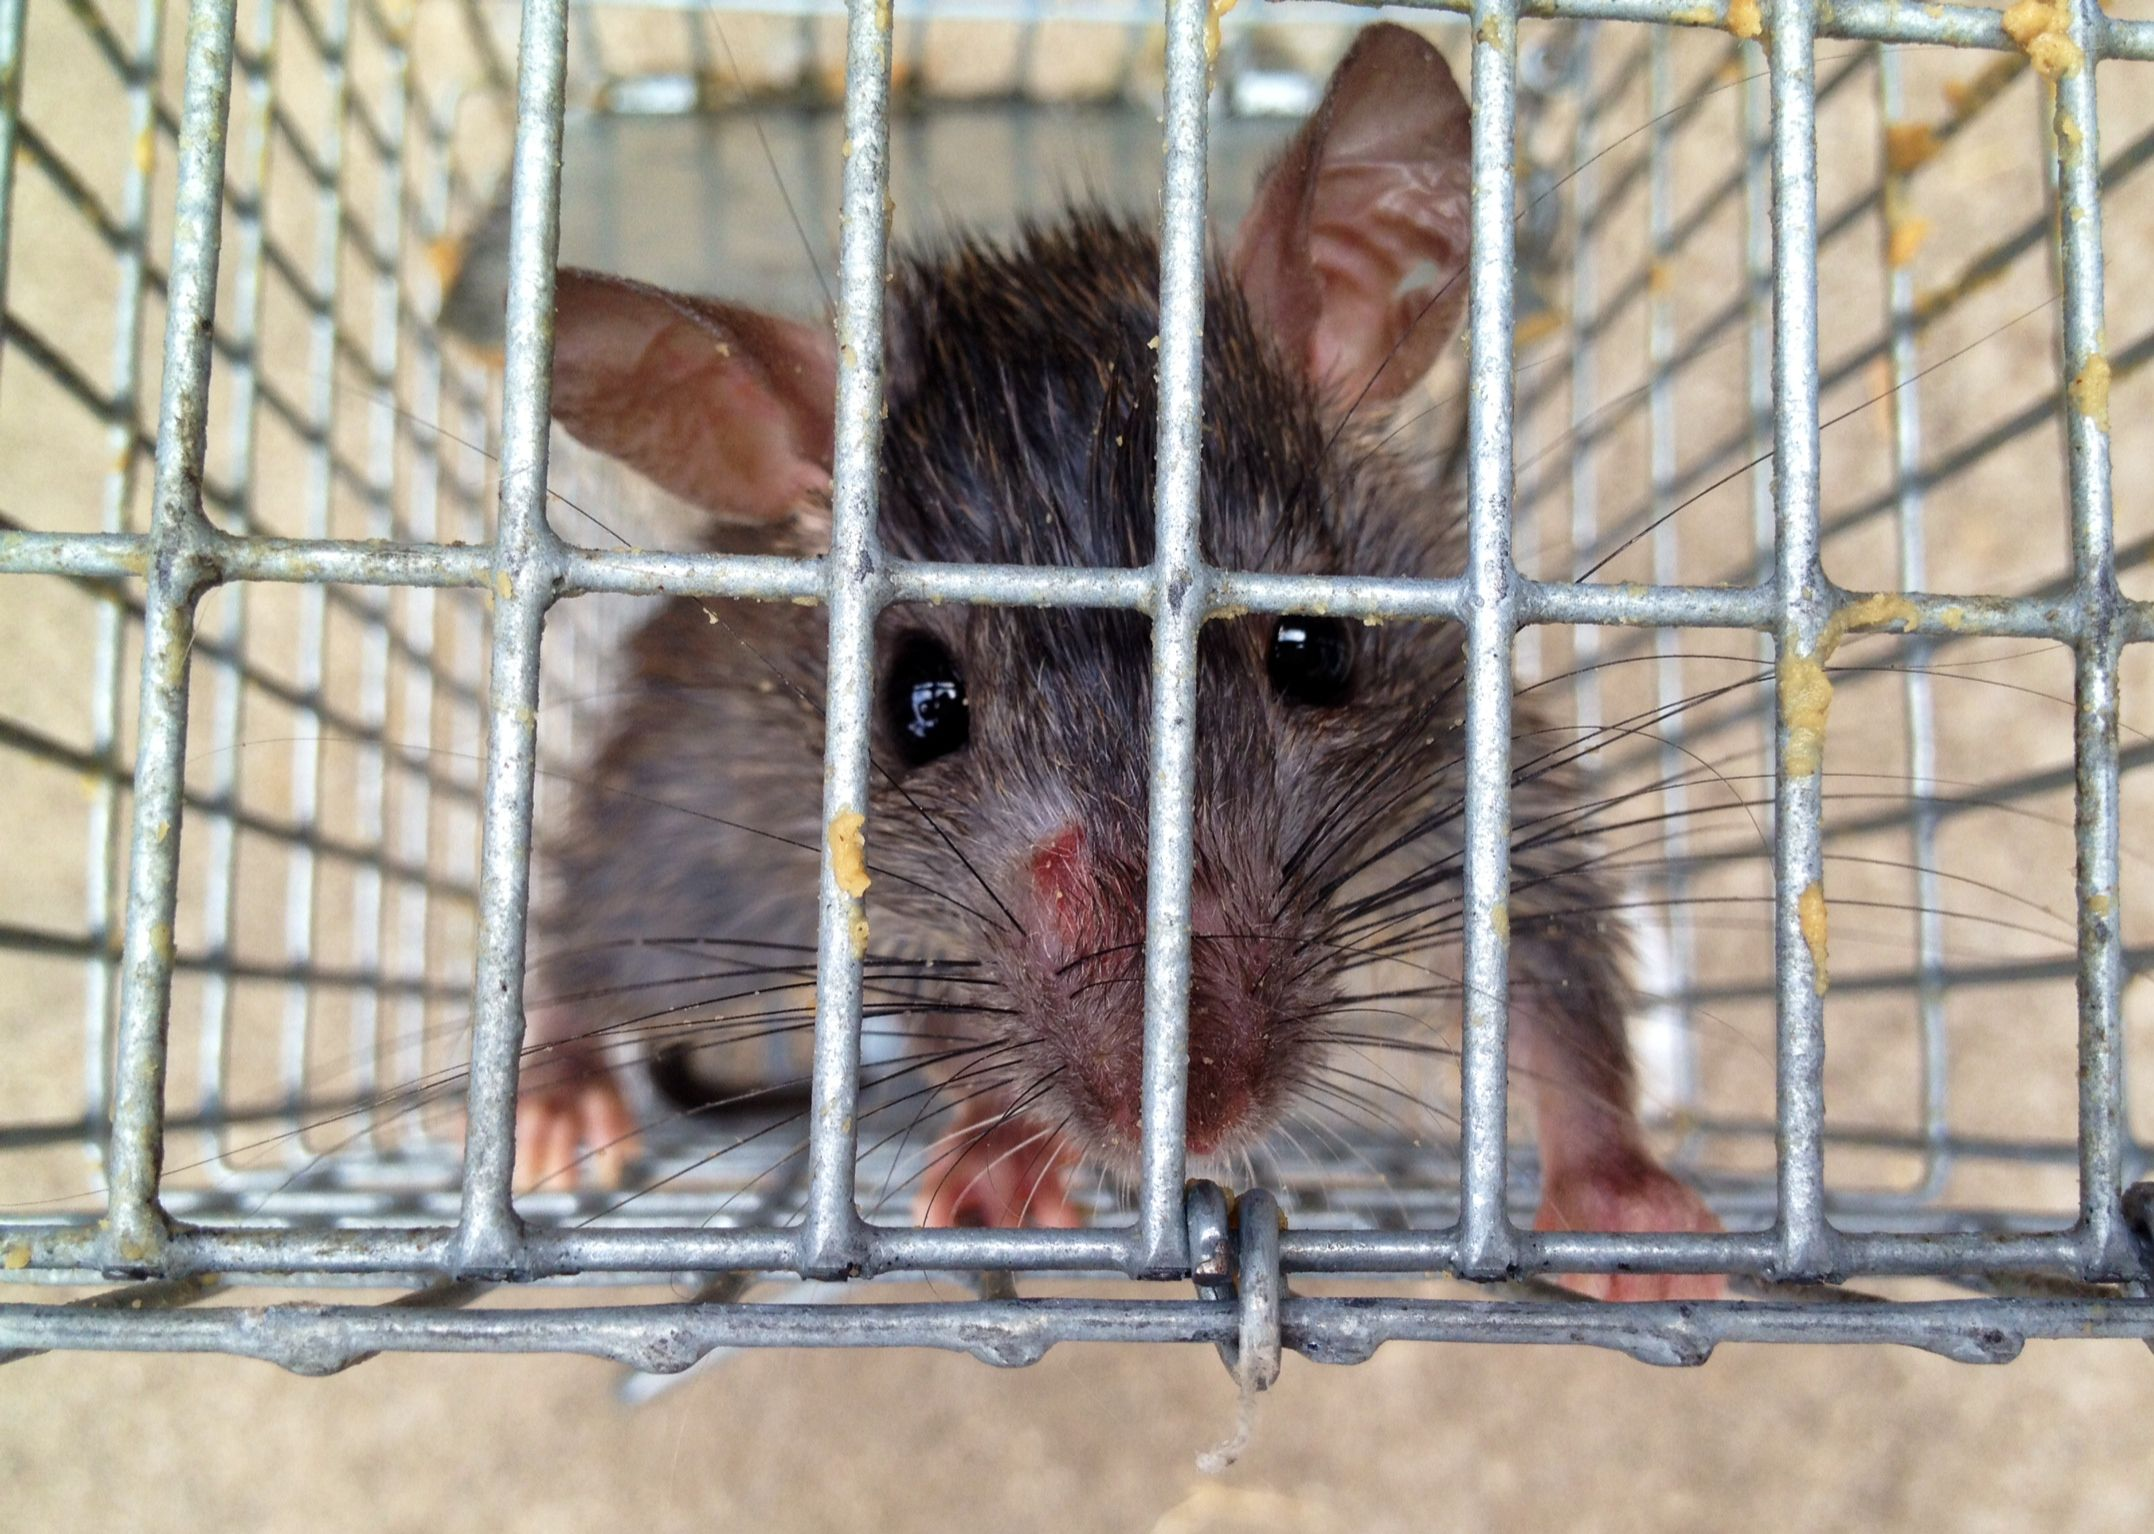 If You Re Putting Away Your Christmas Decorations And Find Extra Guests In The Attic We Can Help Rodent Control Rats Animals Rodent Control